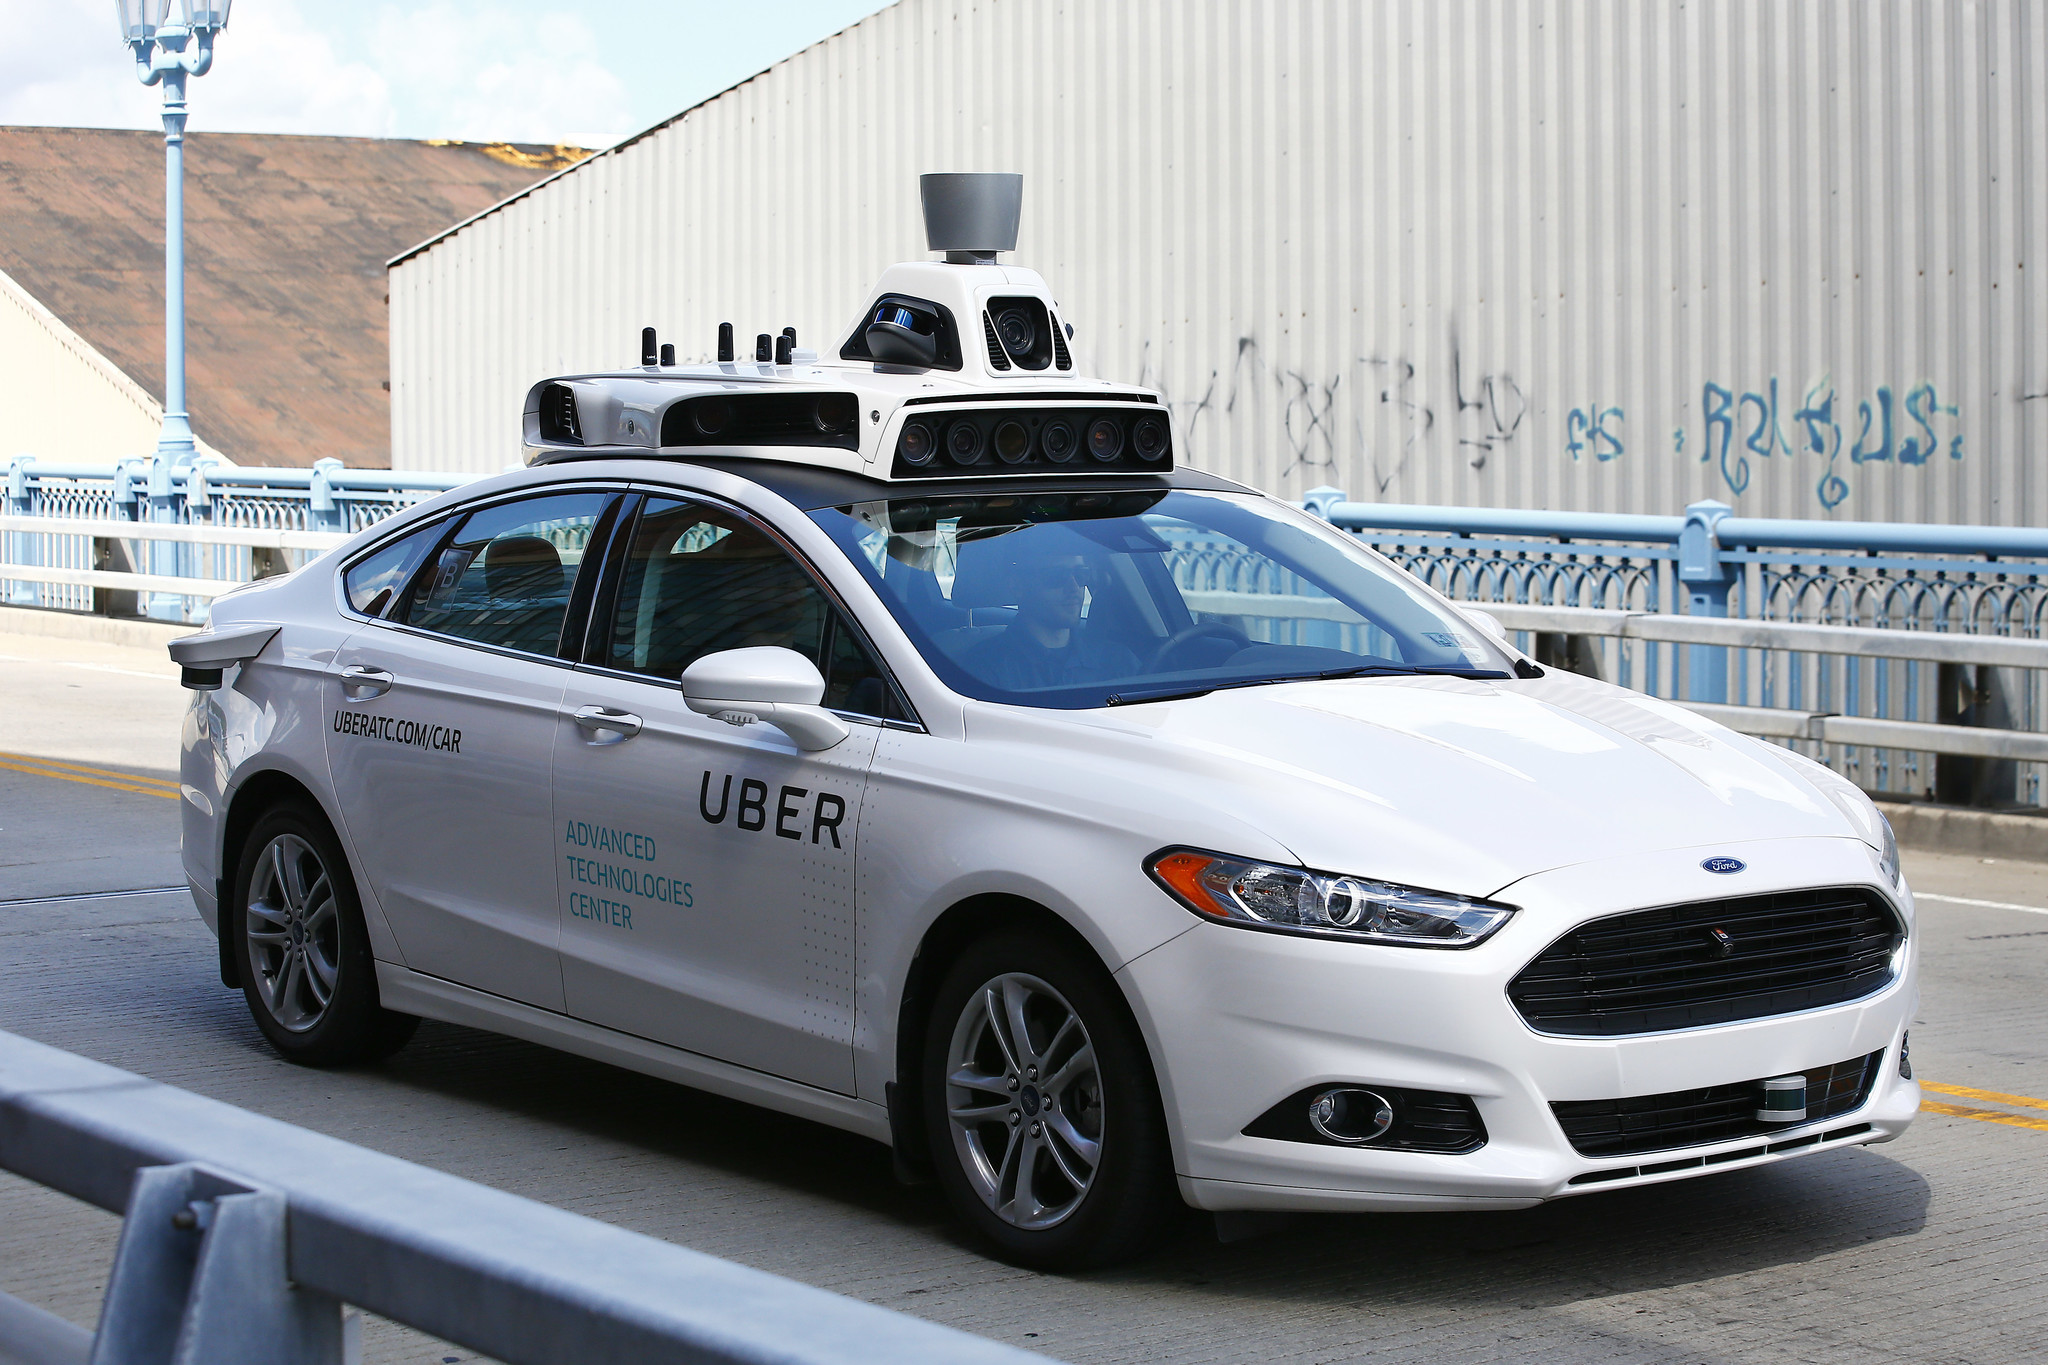 Uber To Introduce Self Driving Cars To Its Fleet In Coming Weeks